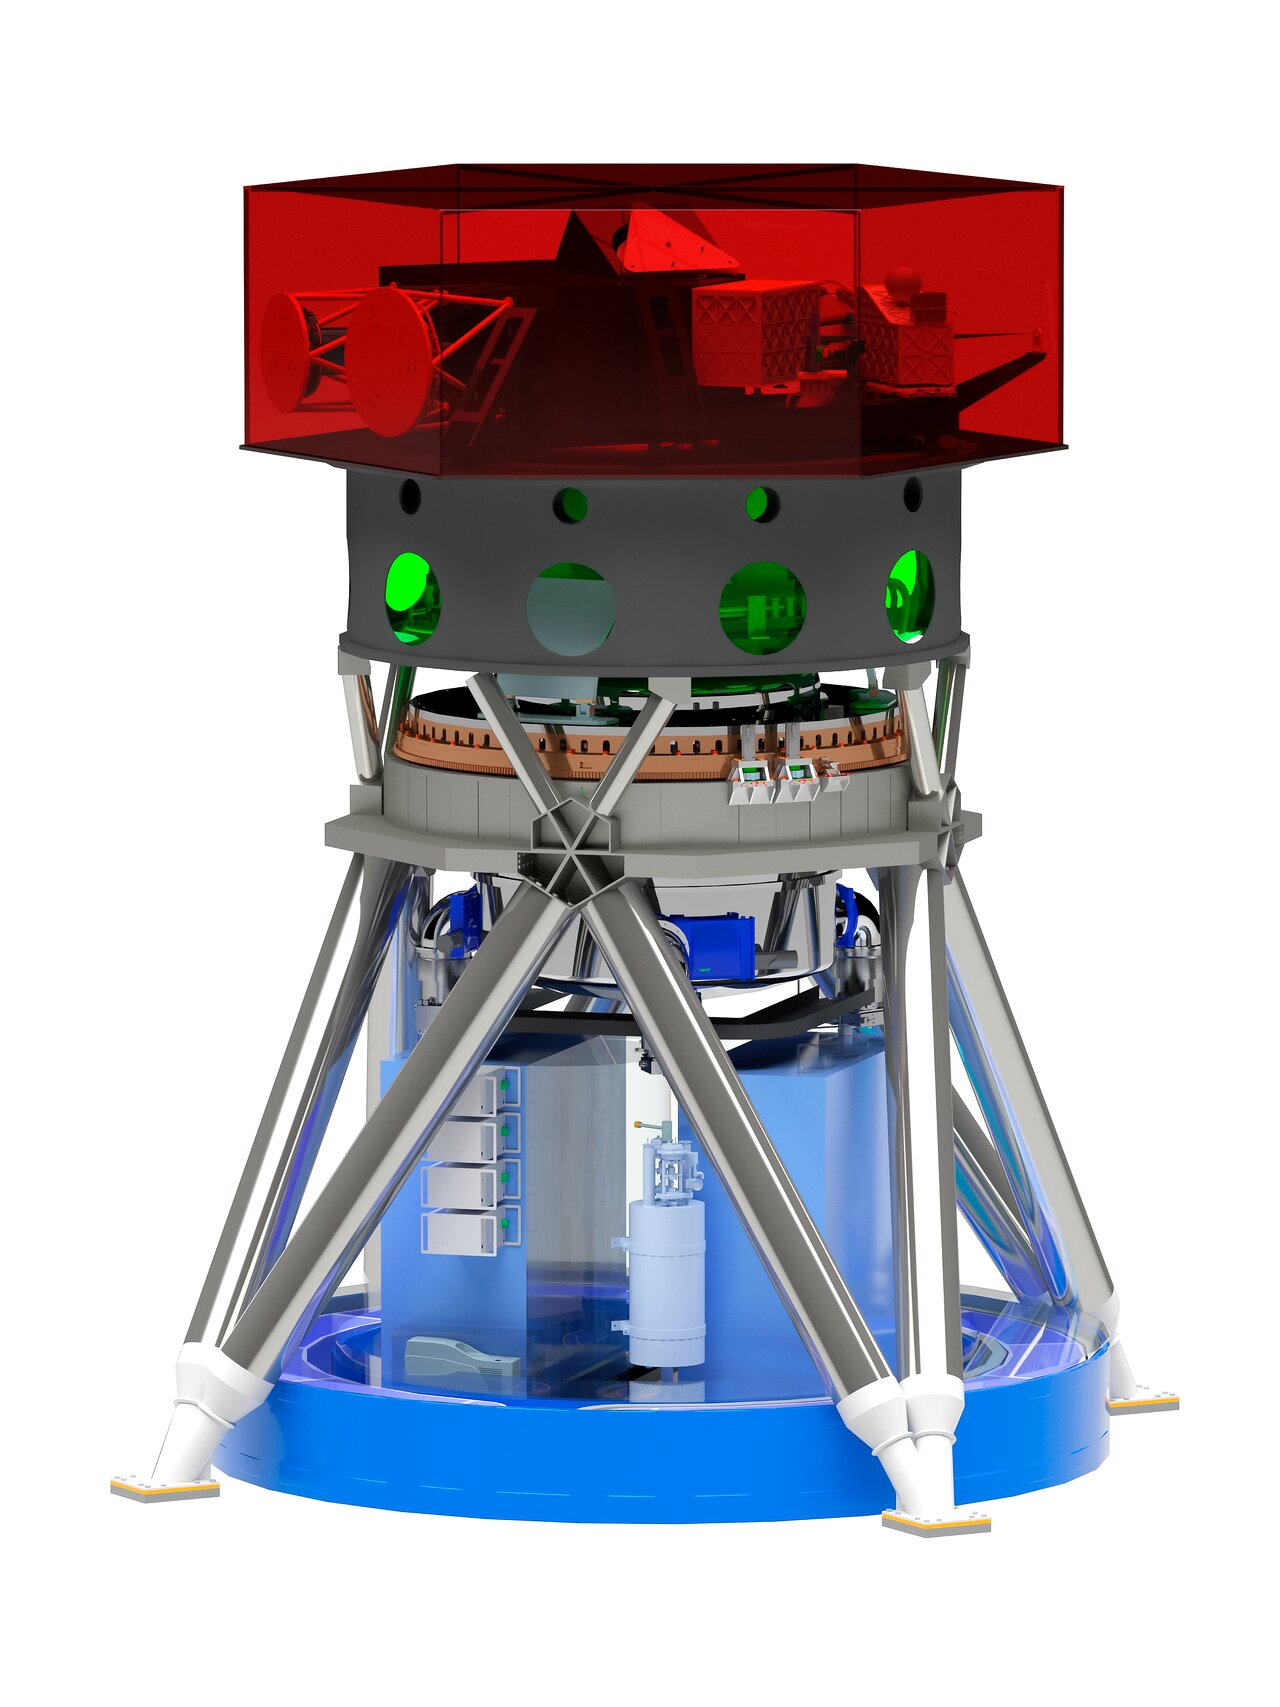 Rendering of the MICADO instrument